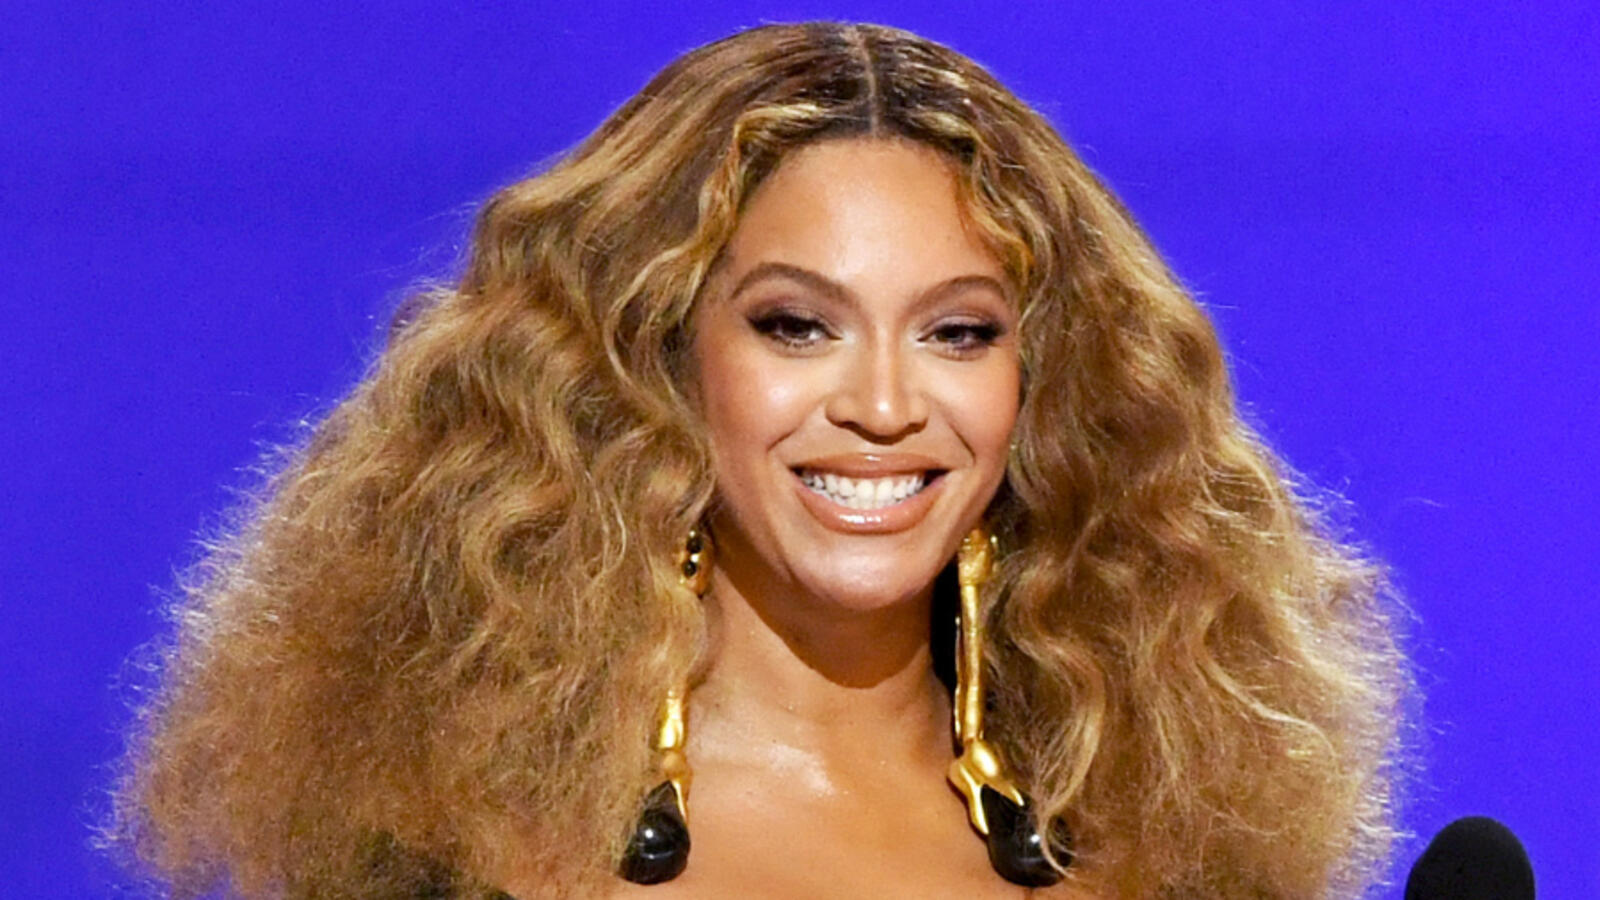 Beyonce poses naked with Jay-Z in intimate vintage home video clips